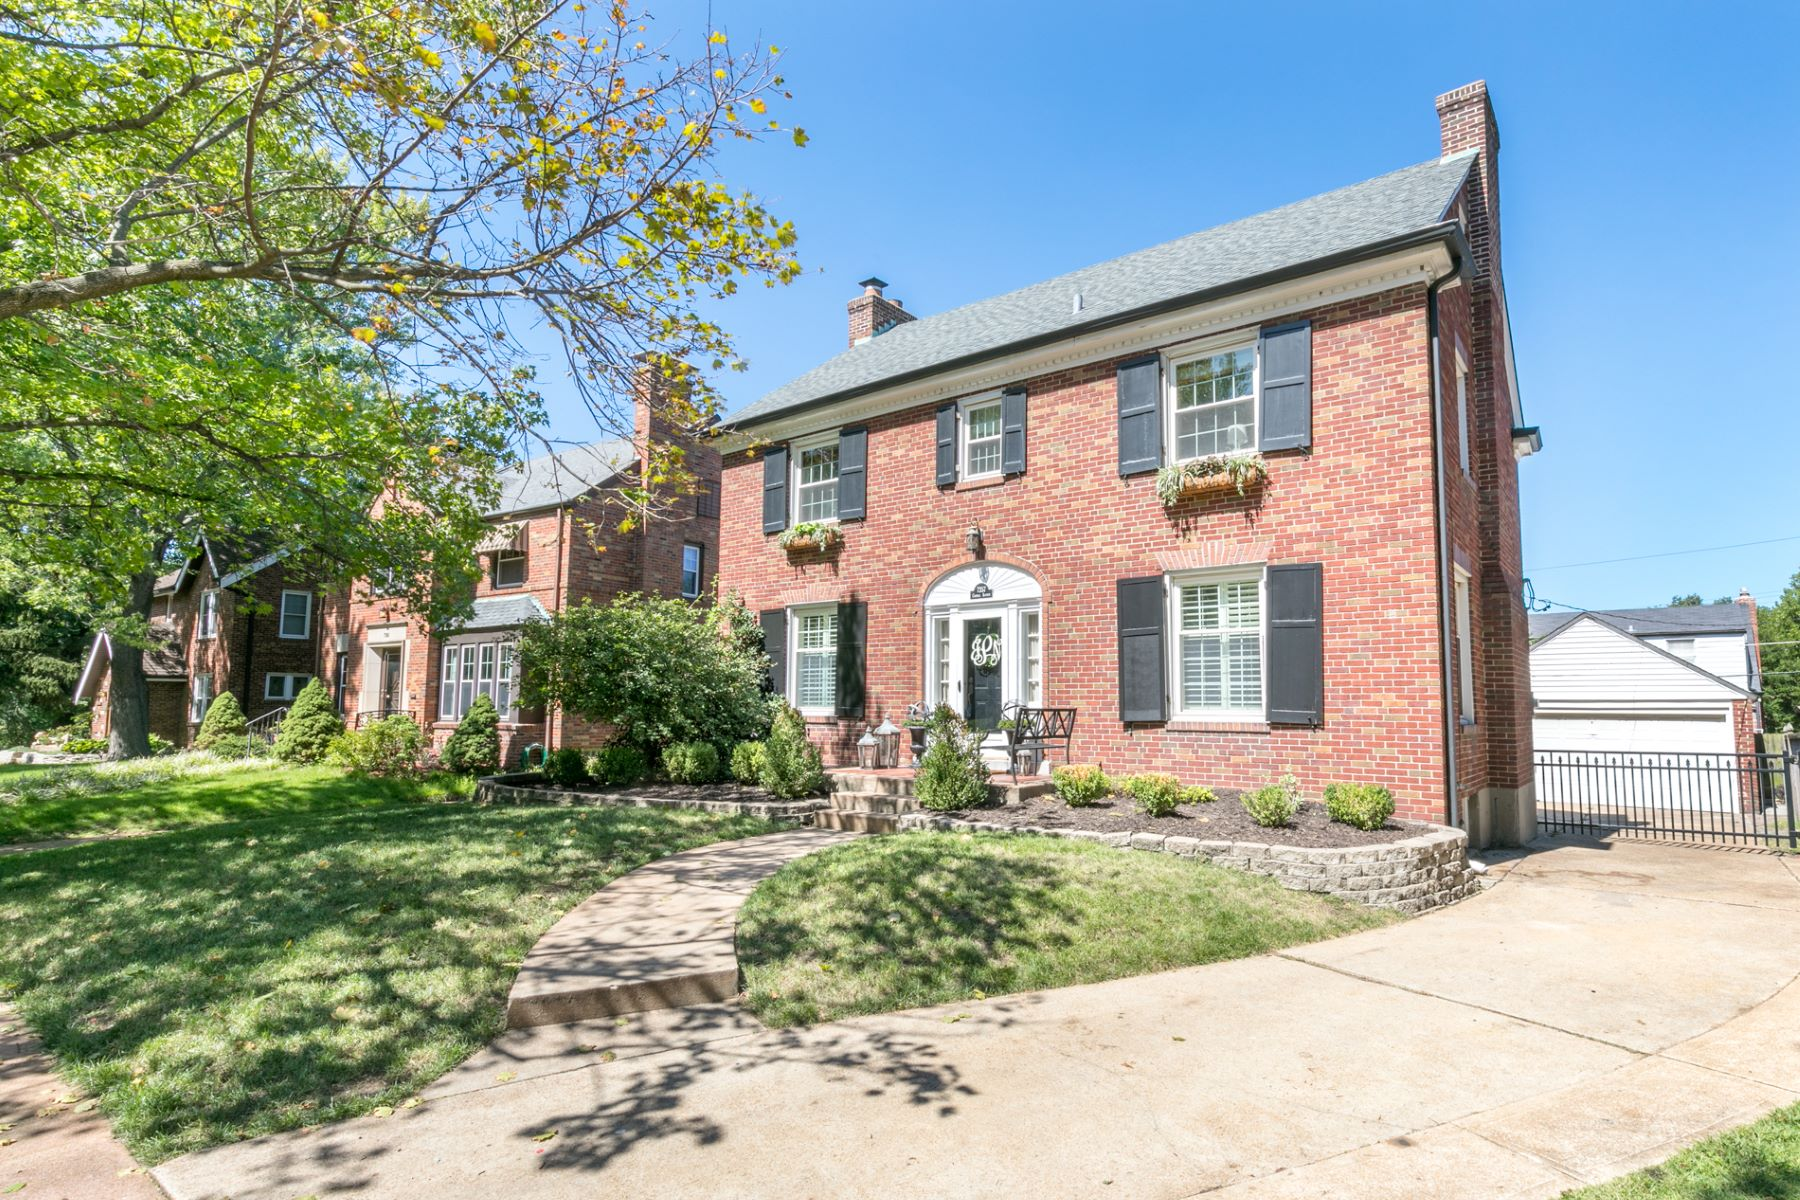 Additional photo for property listing at Cornell Ave 7357 Cornell Ave St. Louis, Missouri 63130 United States